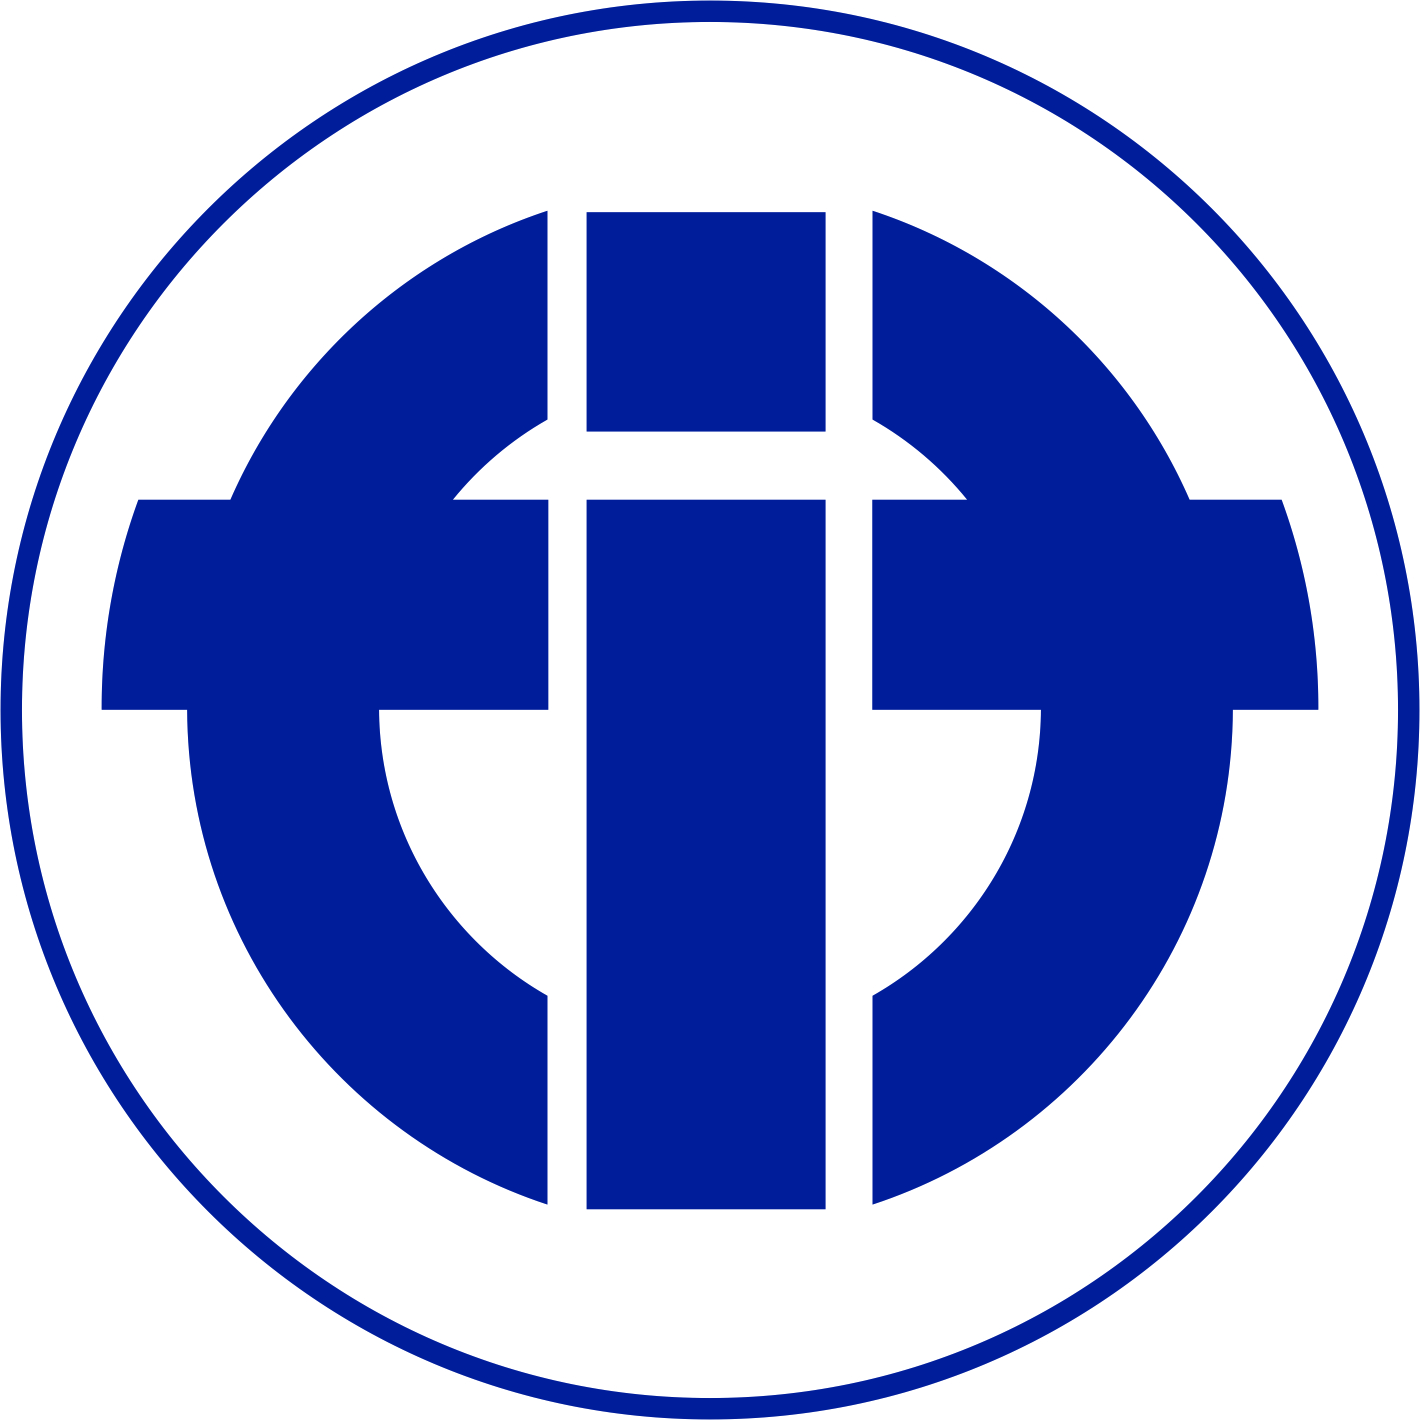 logo for International Federation of Translators